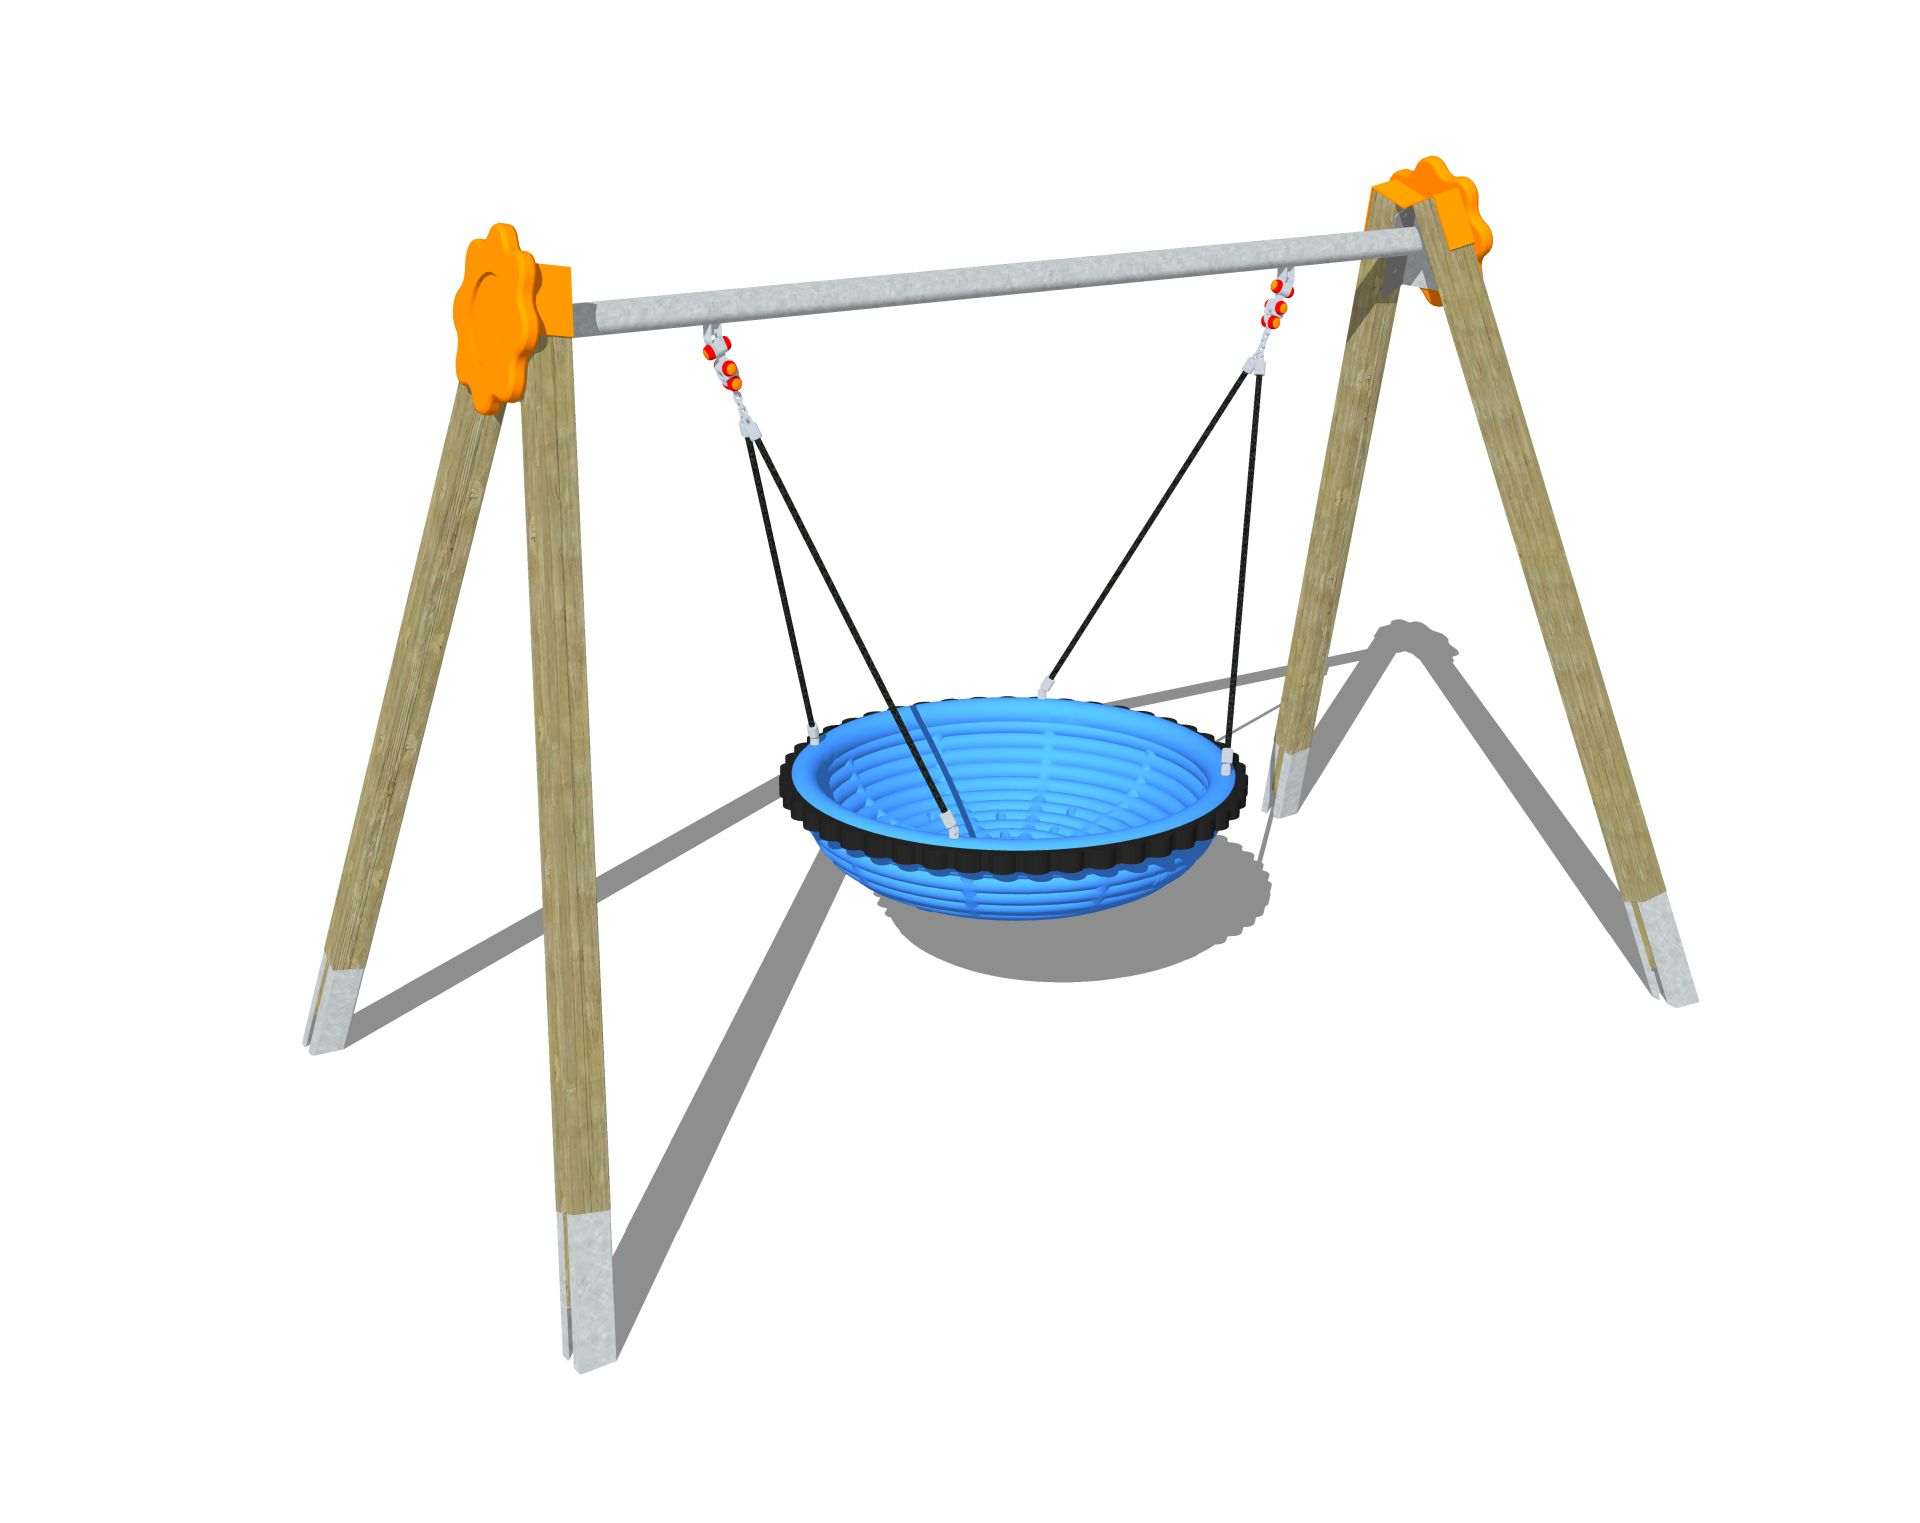 Holzhof SWINGS Sultan wooden swing, Bam Bou polyethylene nest basket - metal beam with polyethylene decor.